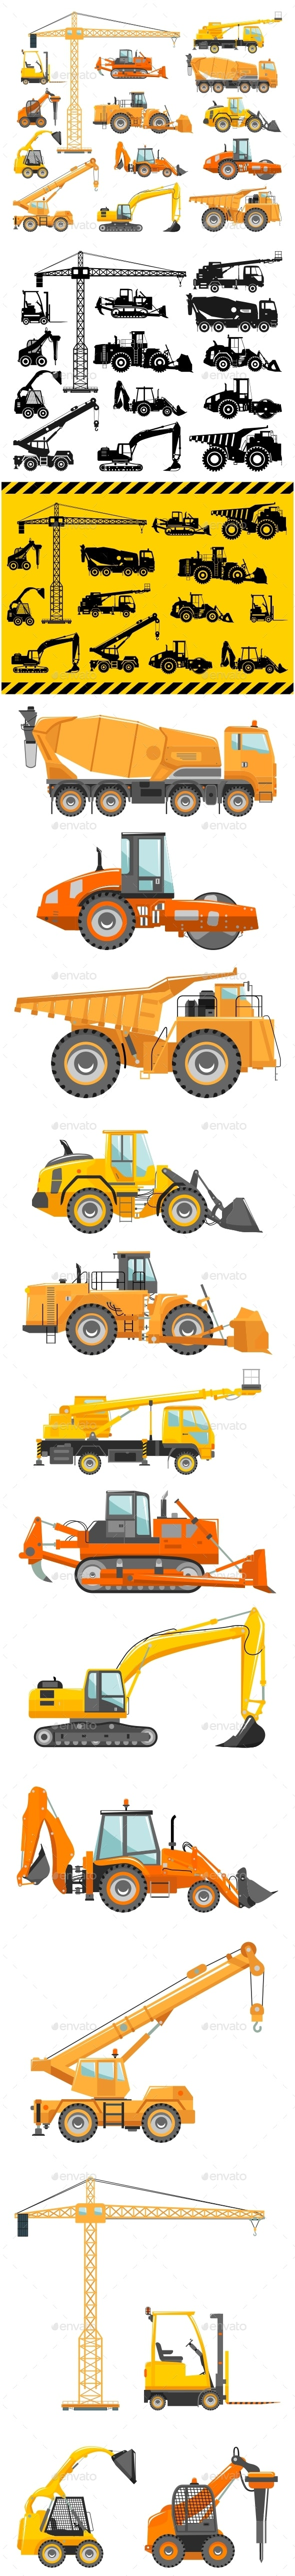 Set of Heavy Construction and Mining Machines Icons - Industries Business